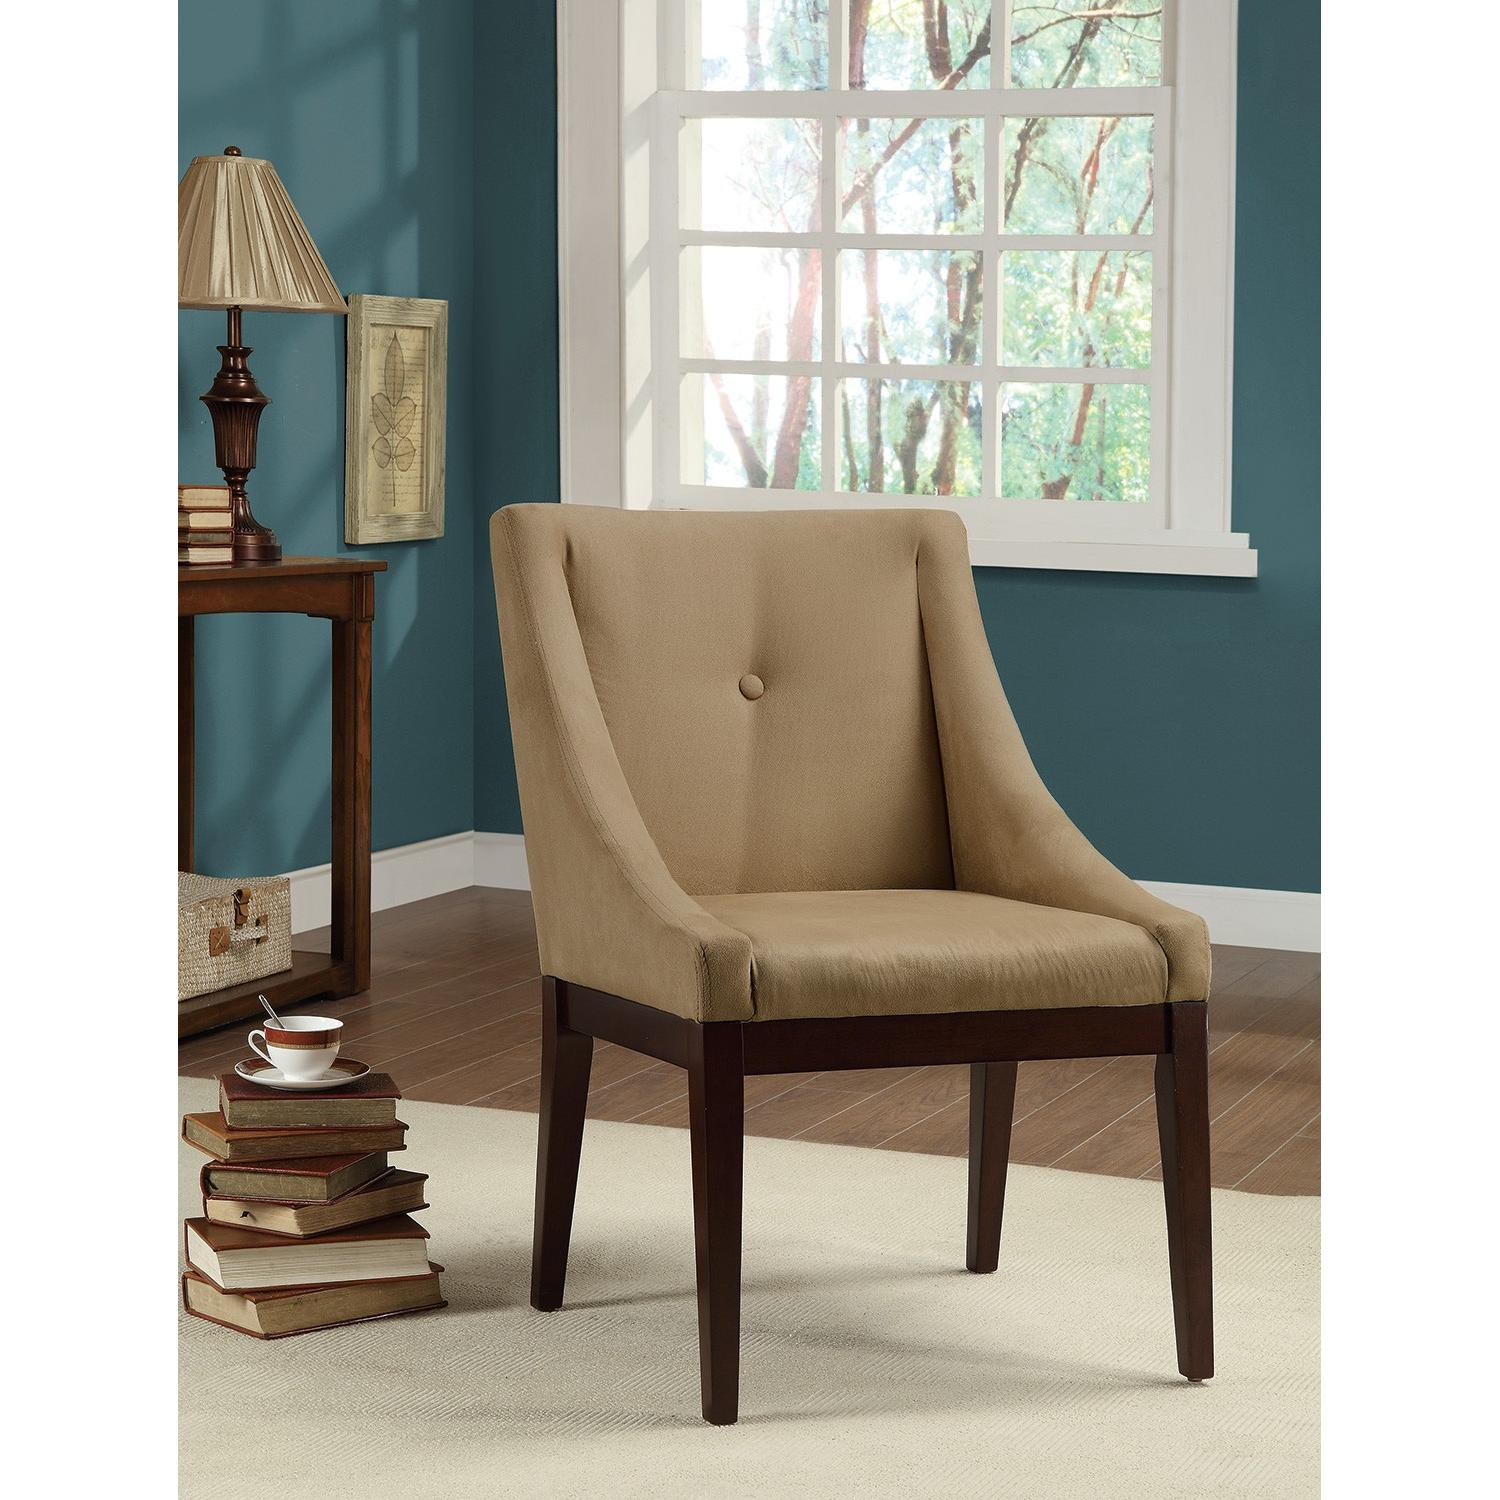 Soft Microvelvet Fabric Accent Chair in Taupe Color - image-1